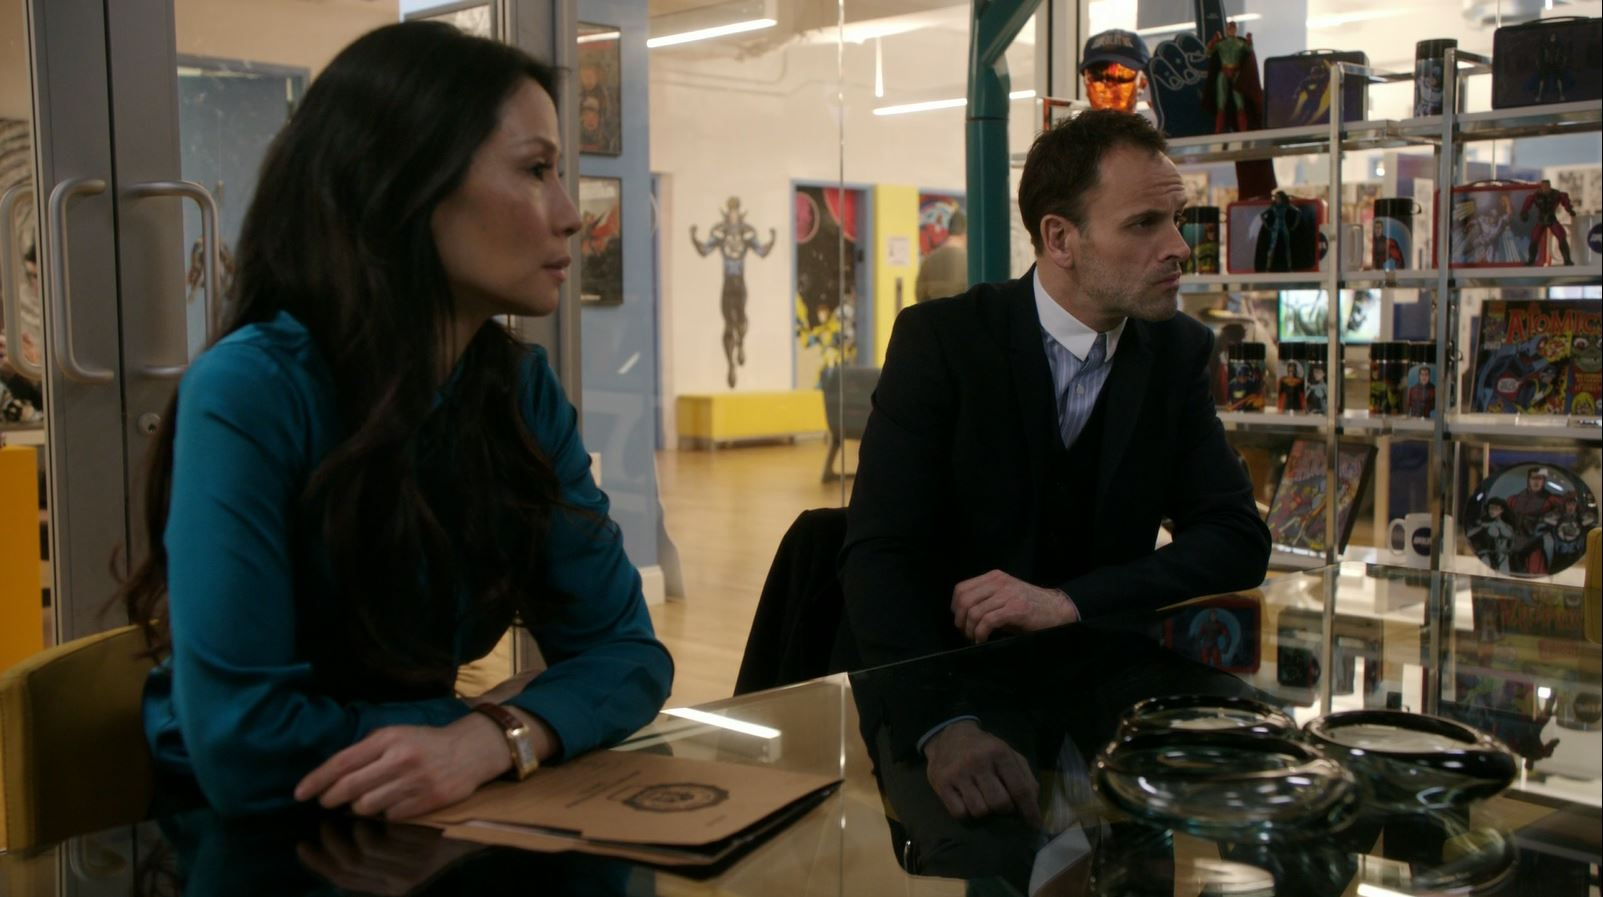 Joan and Sherlock at the comic book studio. Elementary S4Ep17